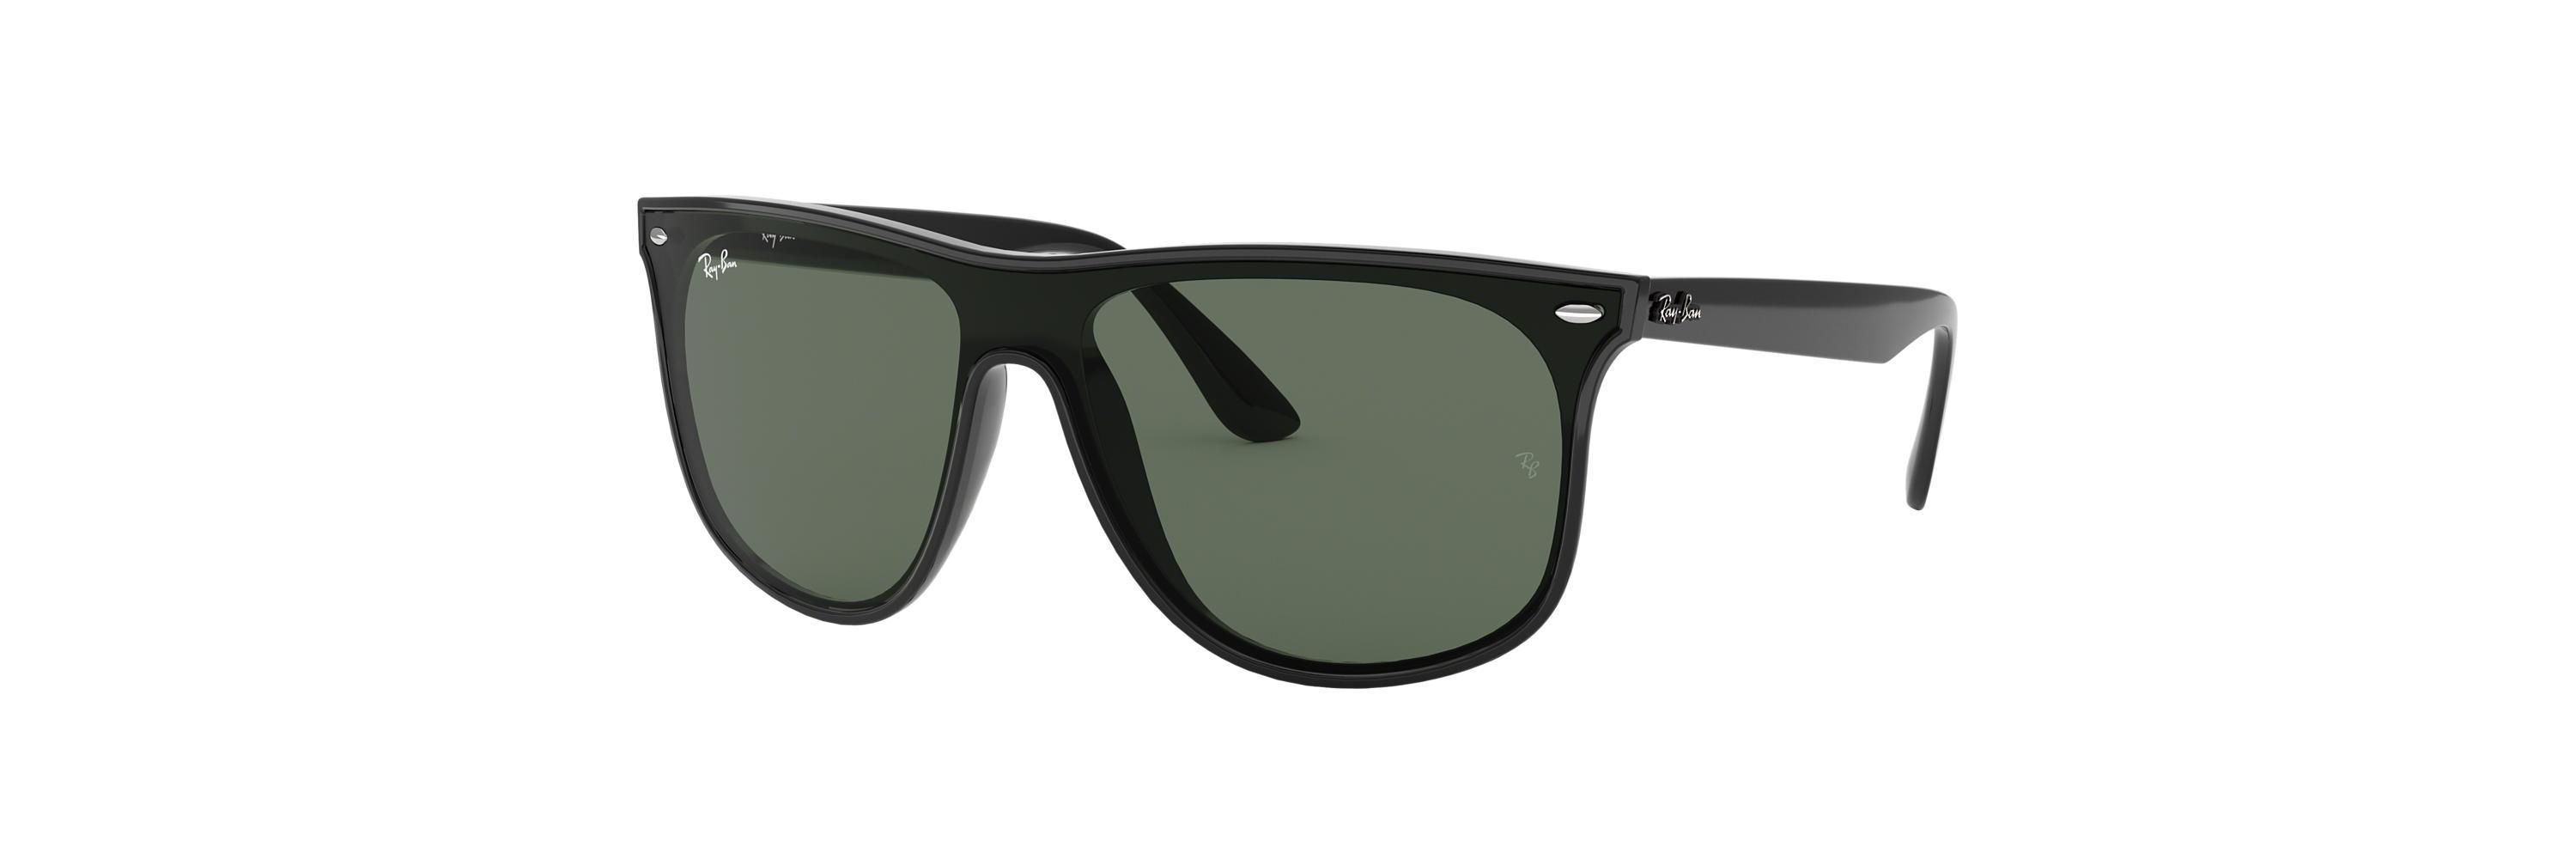 a2c46271e7caf Ray-Ban Rb4447n Blaze Rb4447n in Black - Lyst